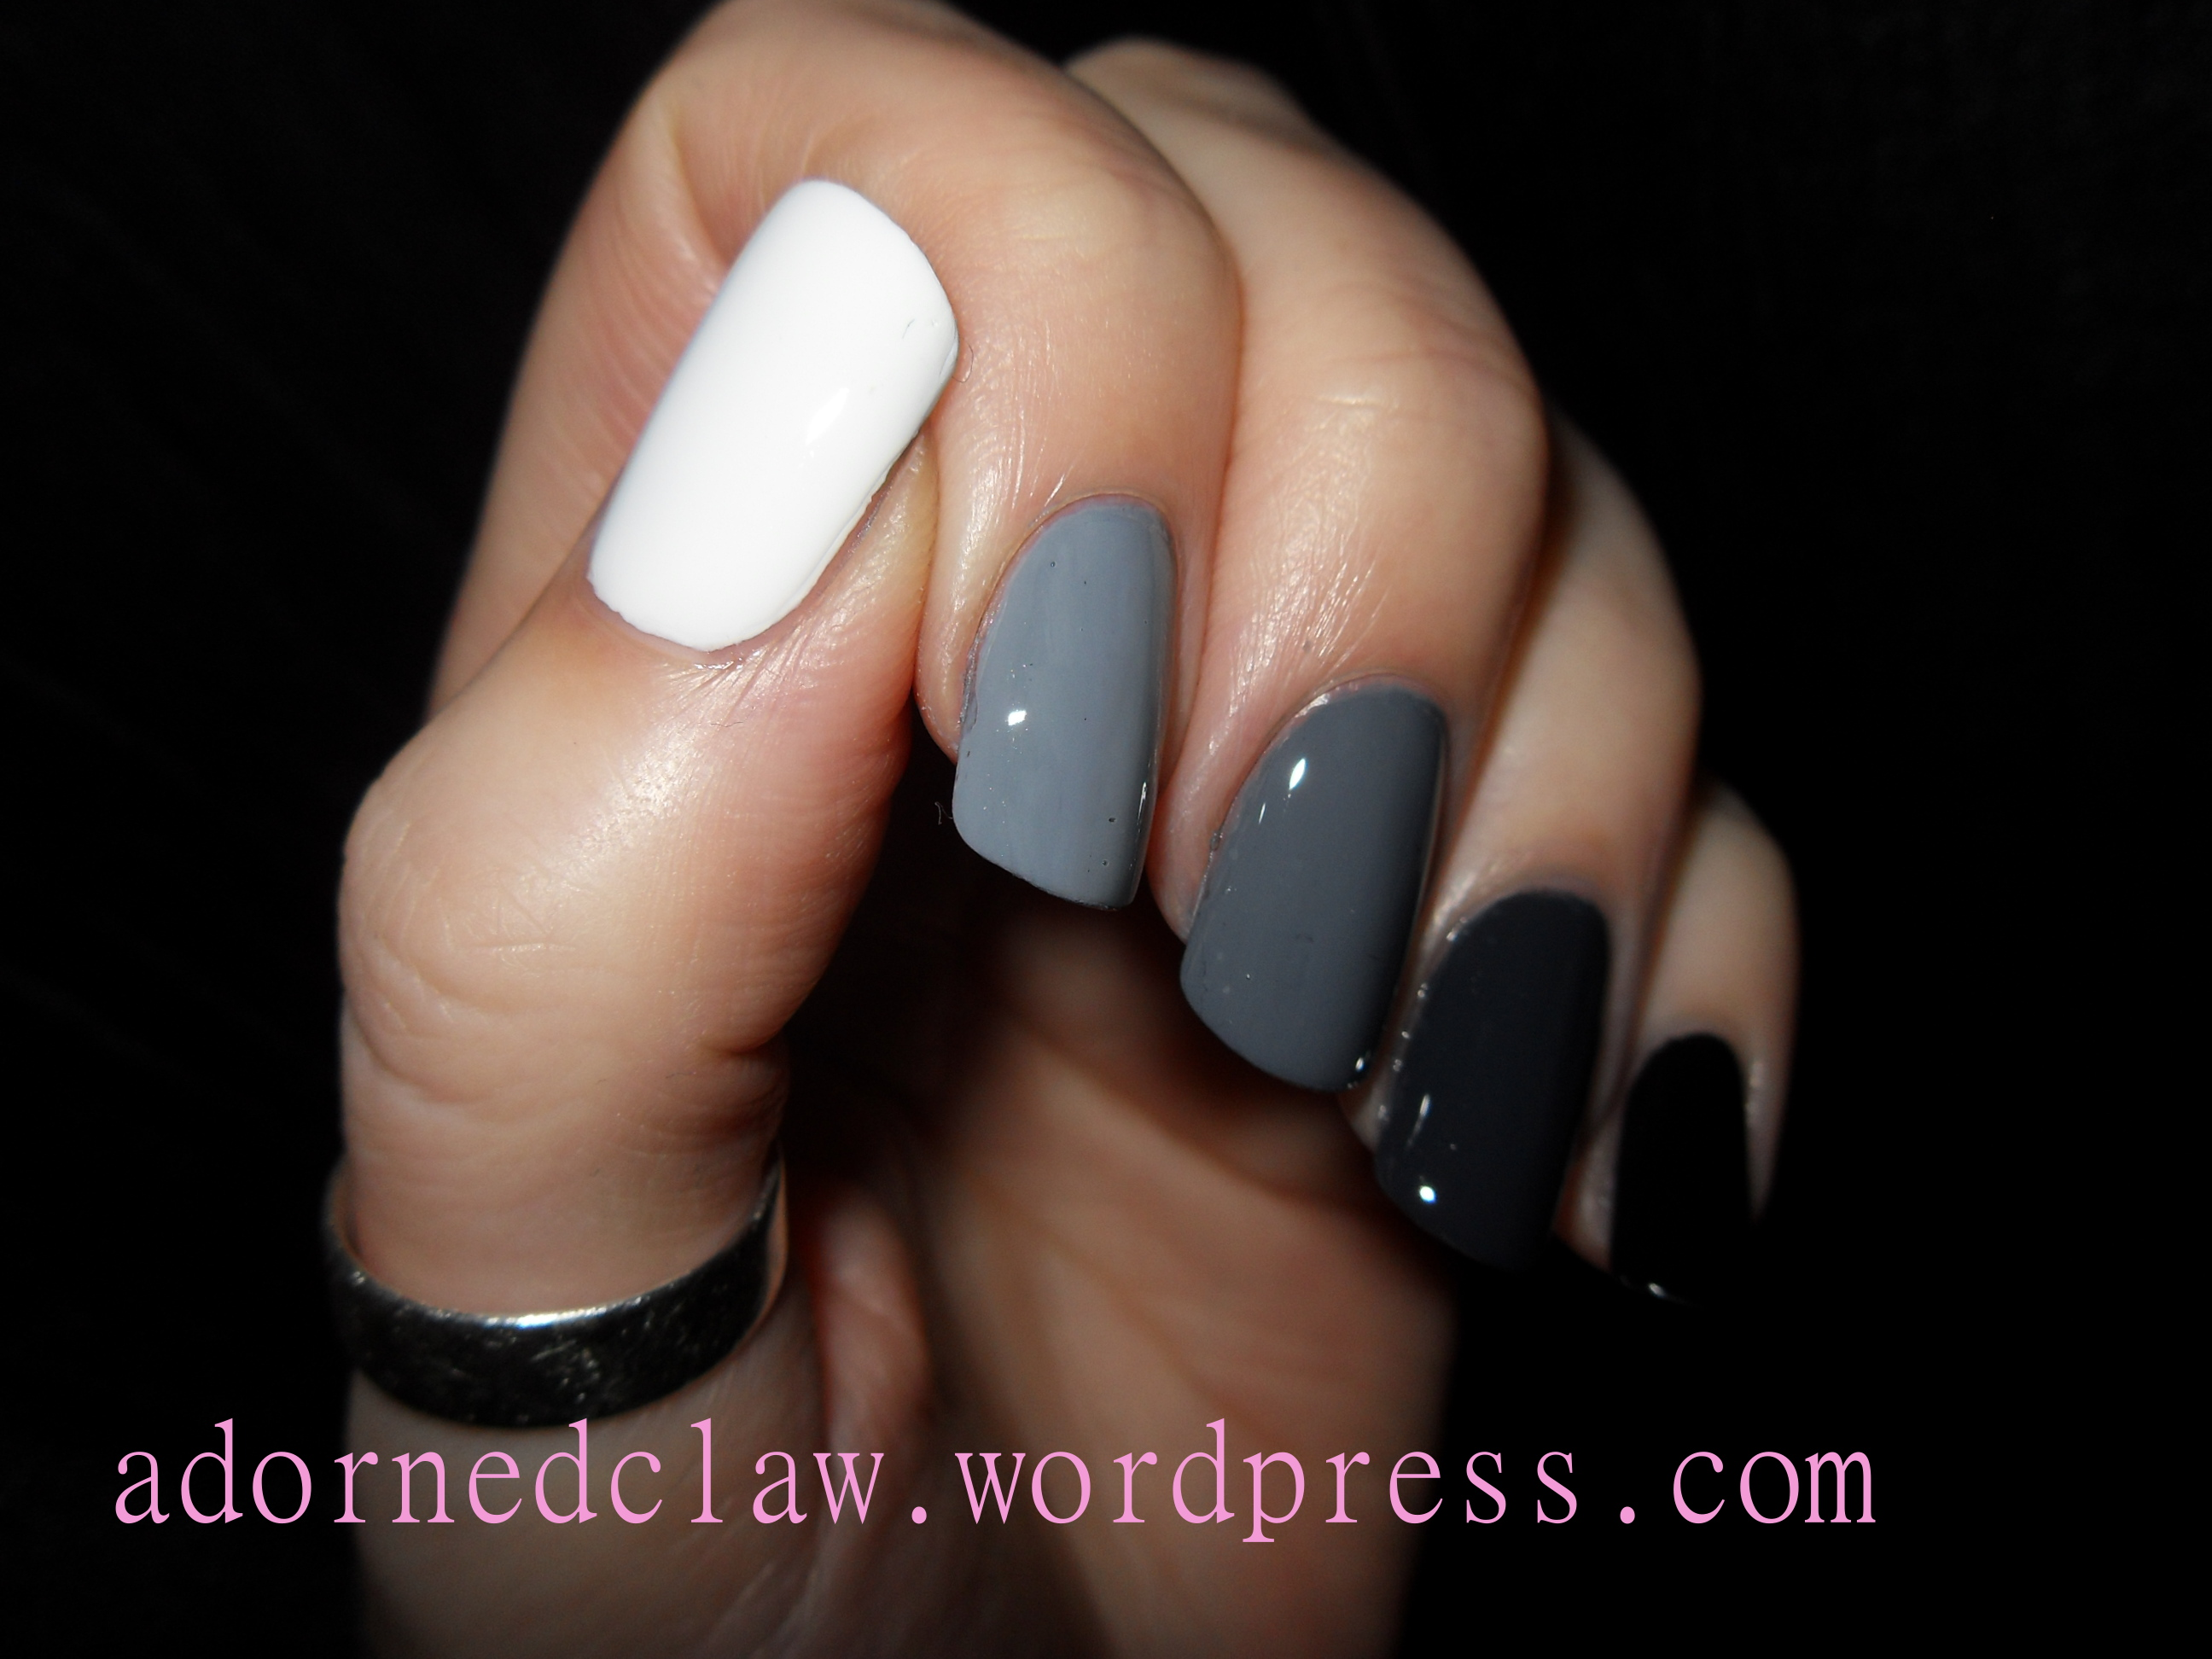 Tutorials | The Adorned Claw